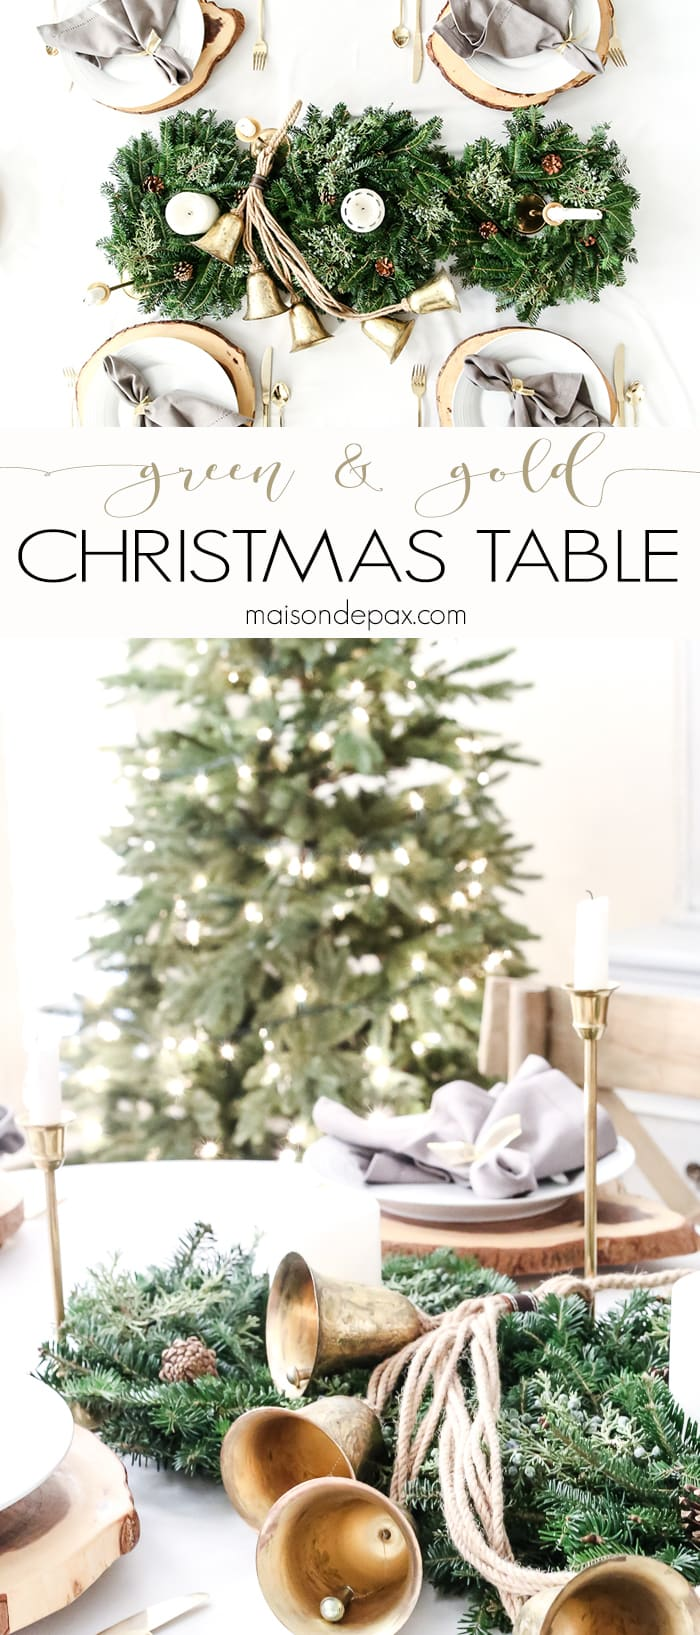 Looking for simple, neutral tablescapes for Christmas?  This green and gold Christmas tablescape with a natural centerpiece of green garland is classic and lovely.  Plus, get a fabulous hack for your holiday table! #Christmastablescape